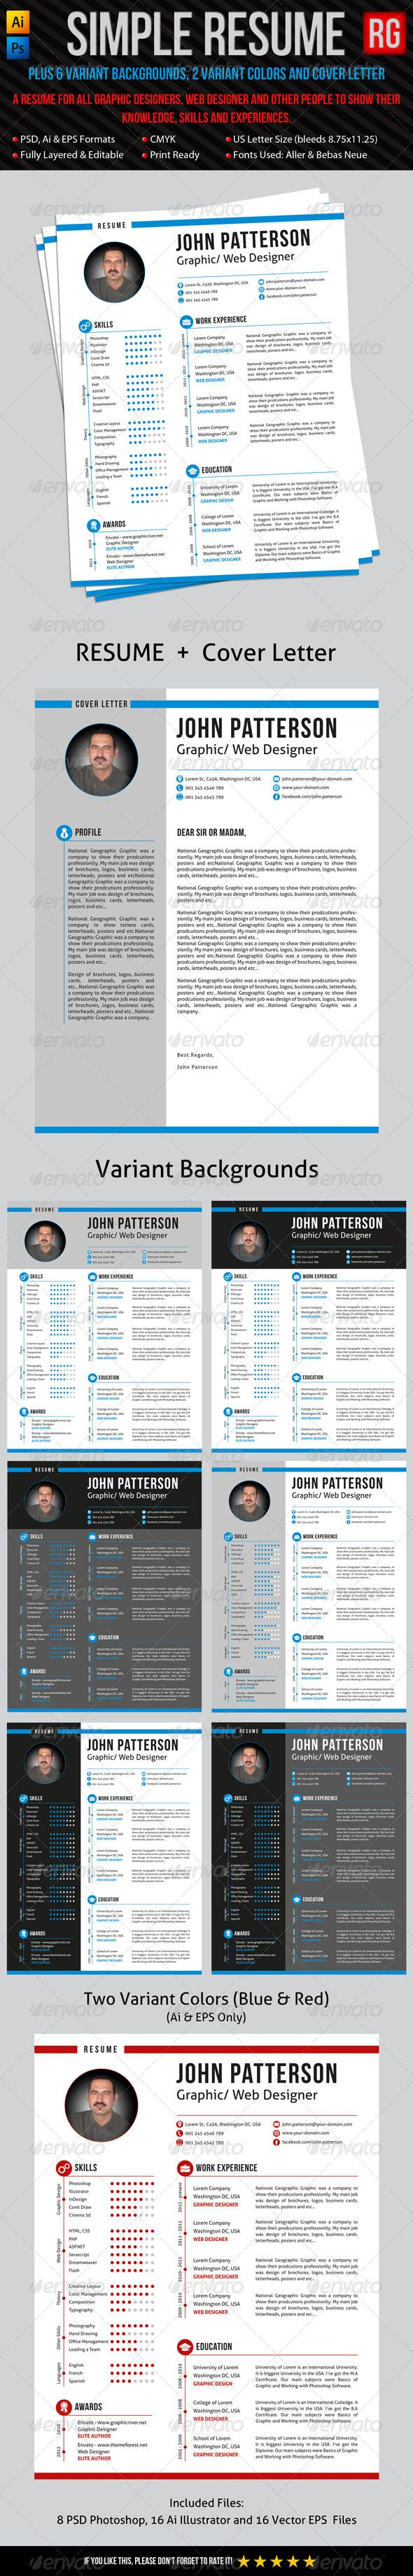 Simple Resume | Simple resume, Cv resume template and Cover letter ...